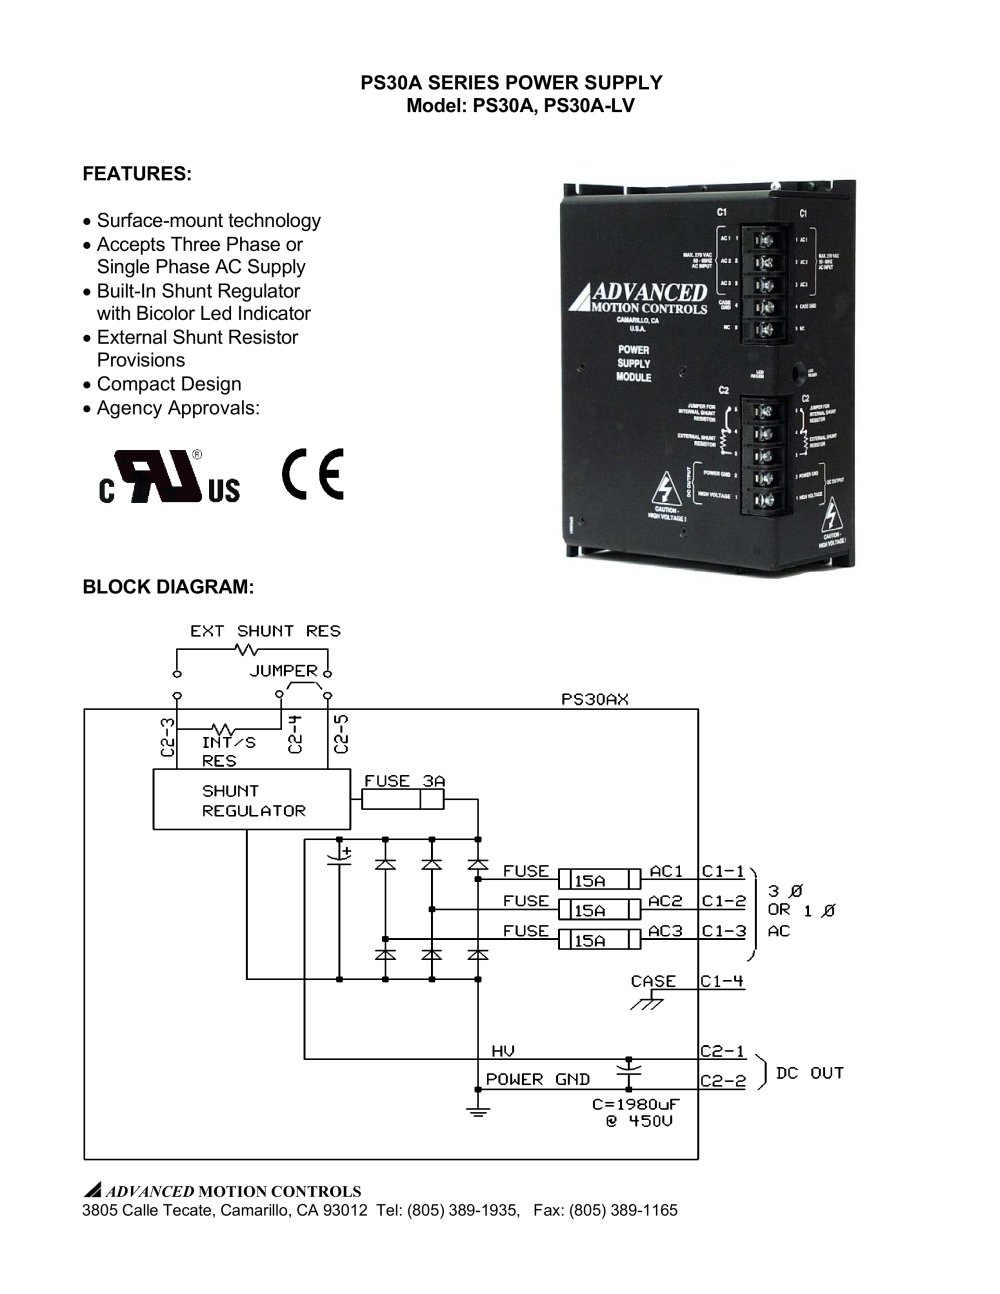 medium resolution of ps30a series power supply model ps30a ps30a lv 1 3 pages